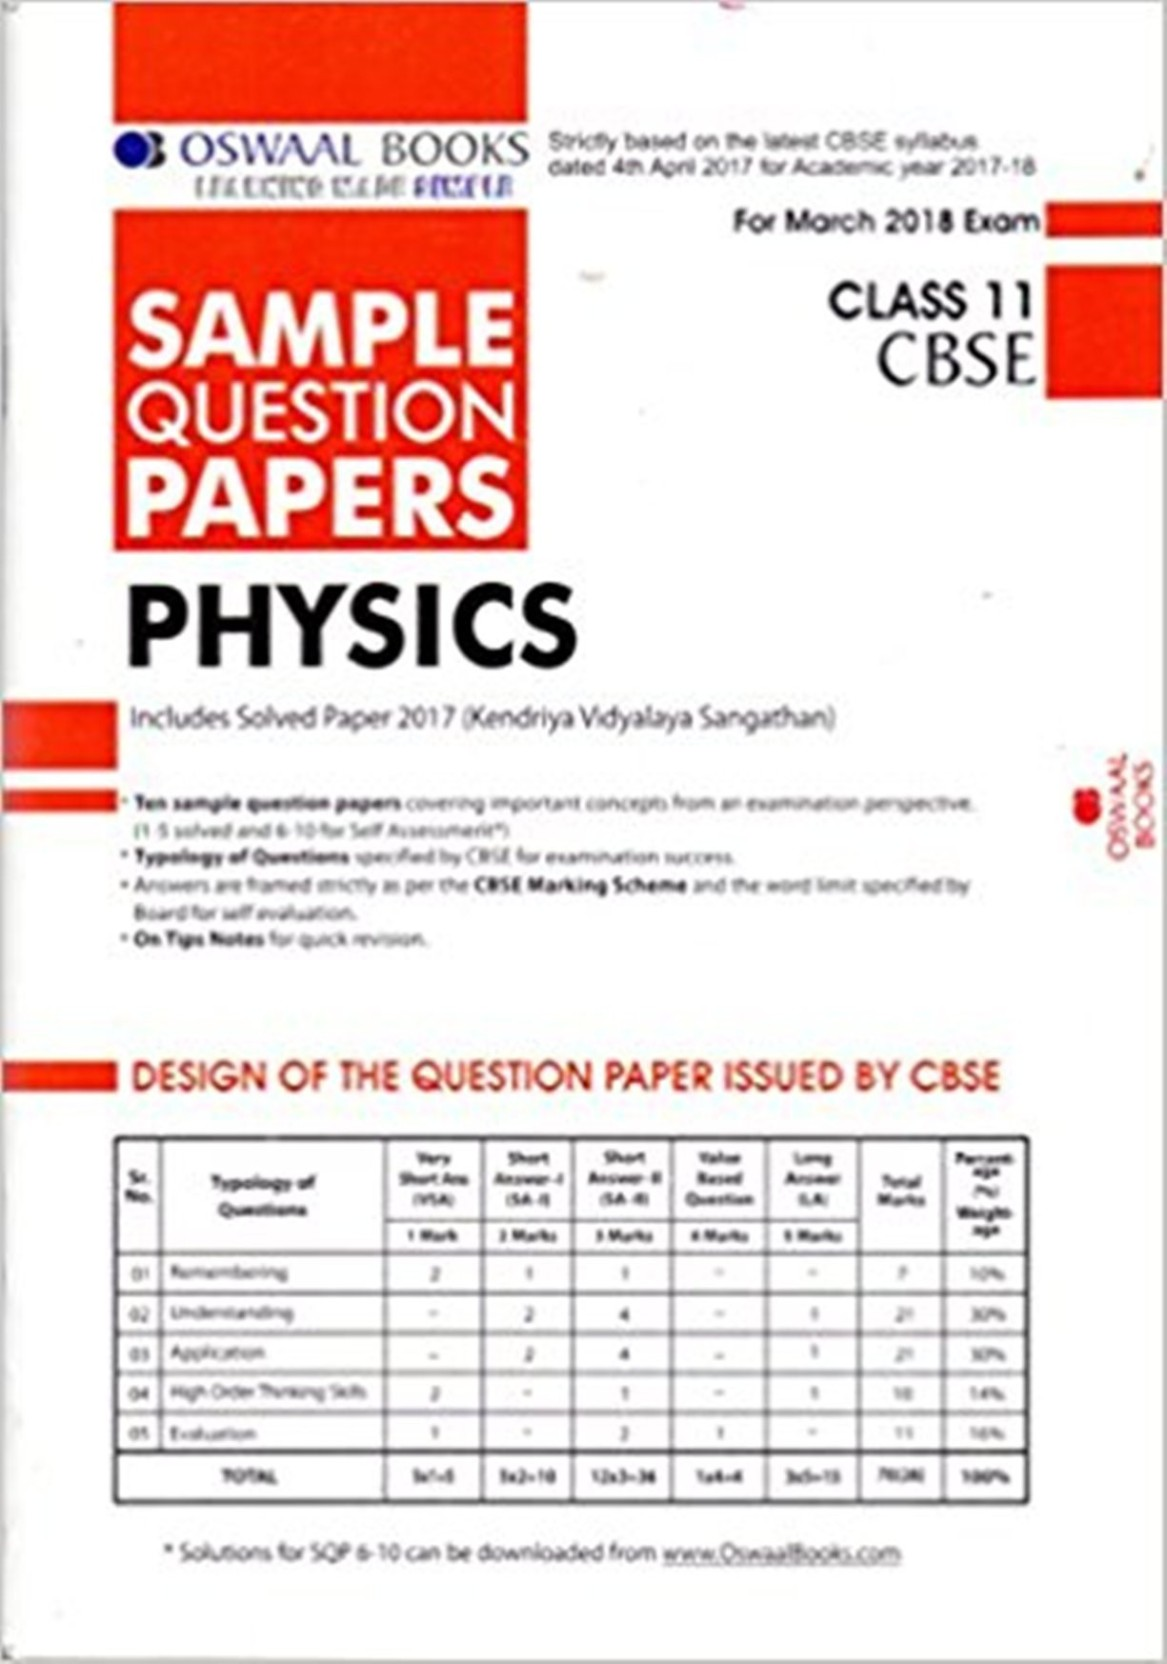 Oswaal CBSE Sample Question Papers for Class 11 Physics (Mar 2018 Exam)  Paperback